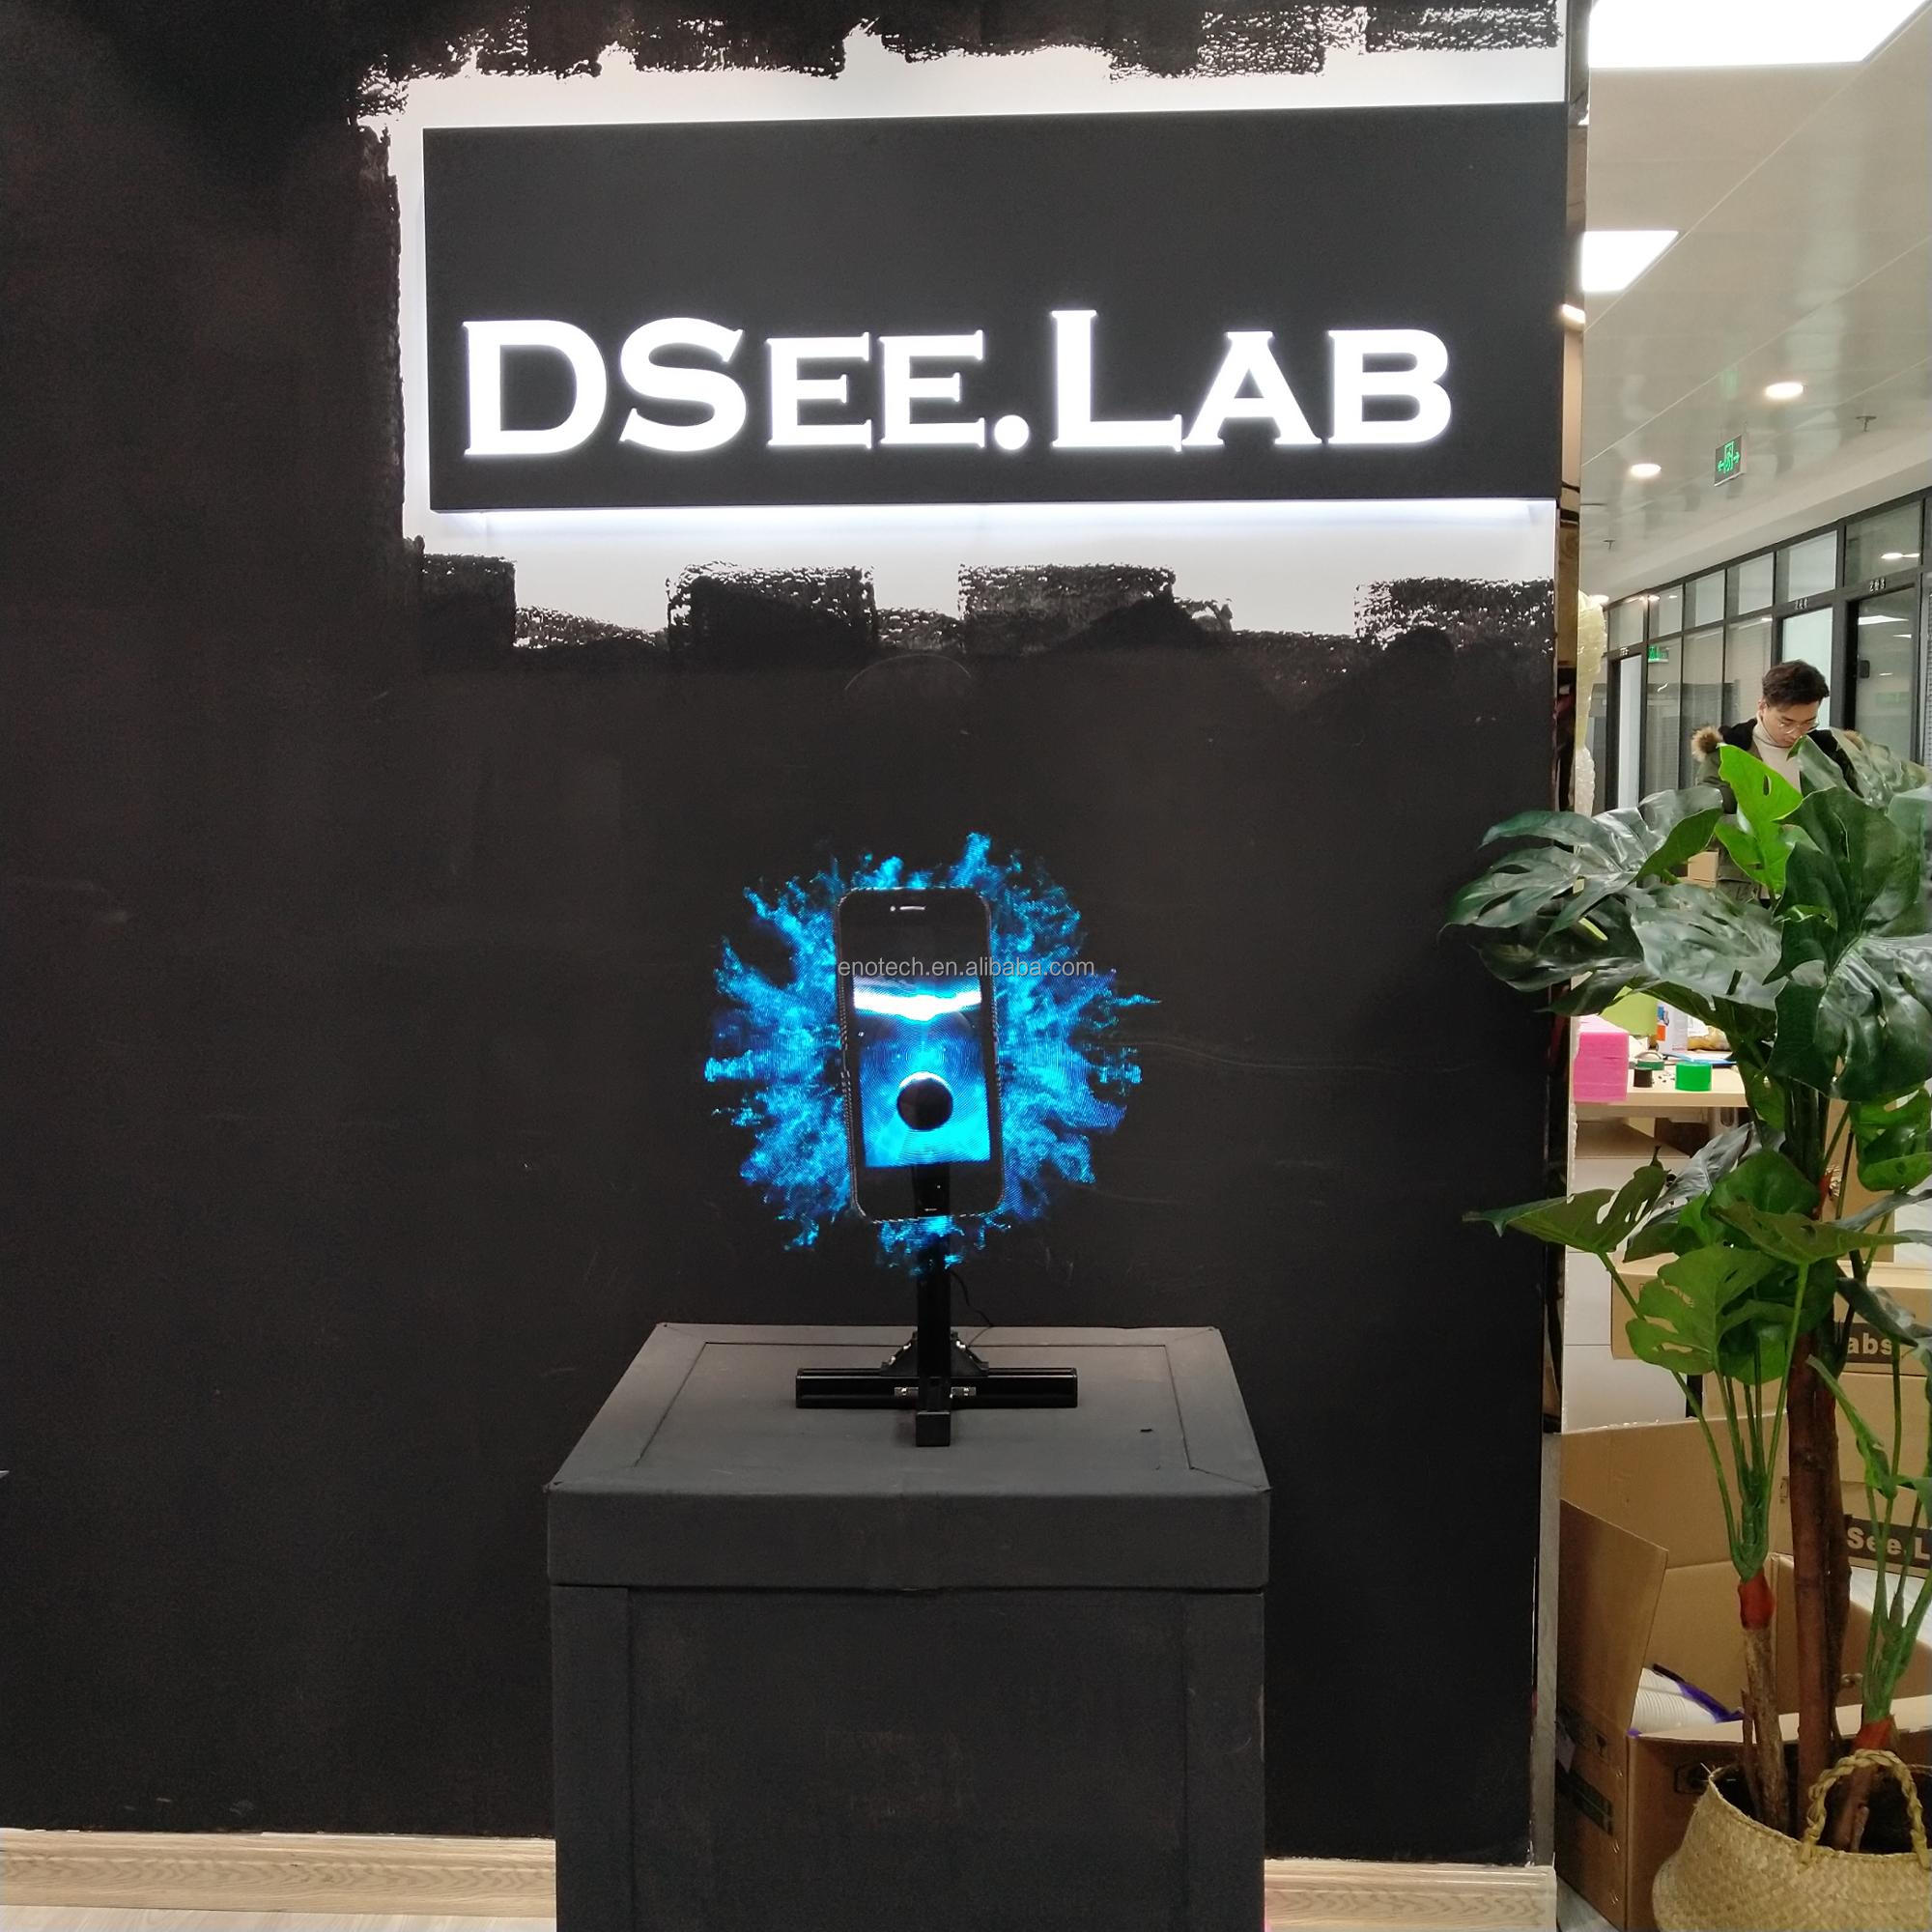 High Quality 3d Hologram Advertising Display Led Fan 3d Latest Hologram  Technology - Buy High Quality 3d Hologram,Advertising Display Led Fan,3d